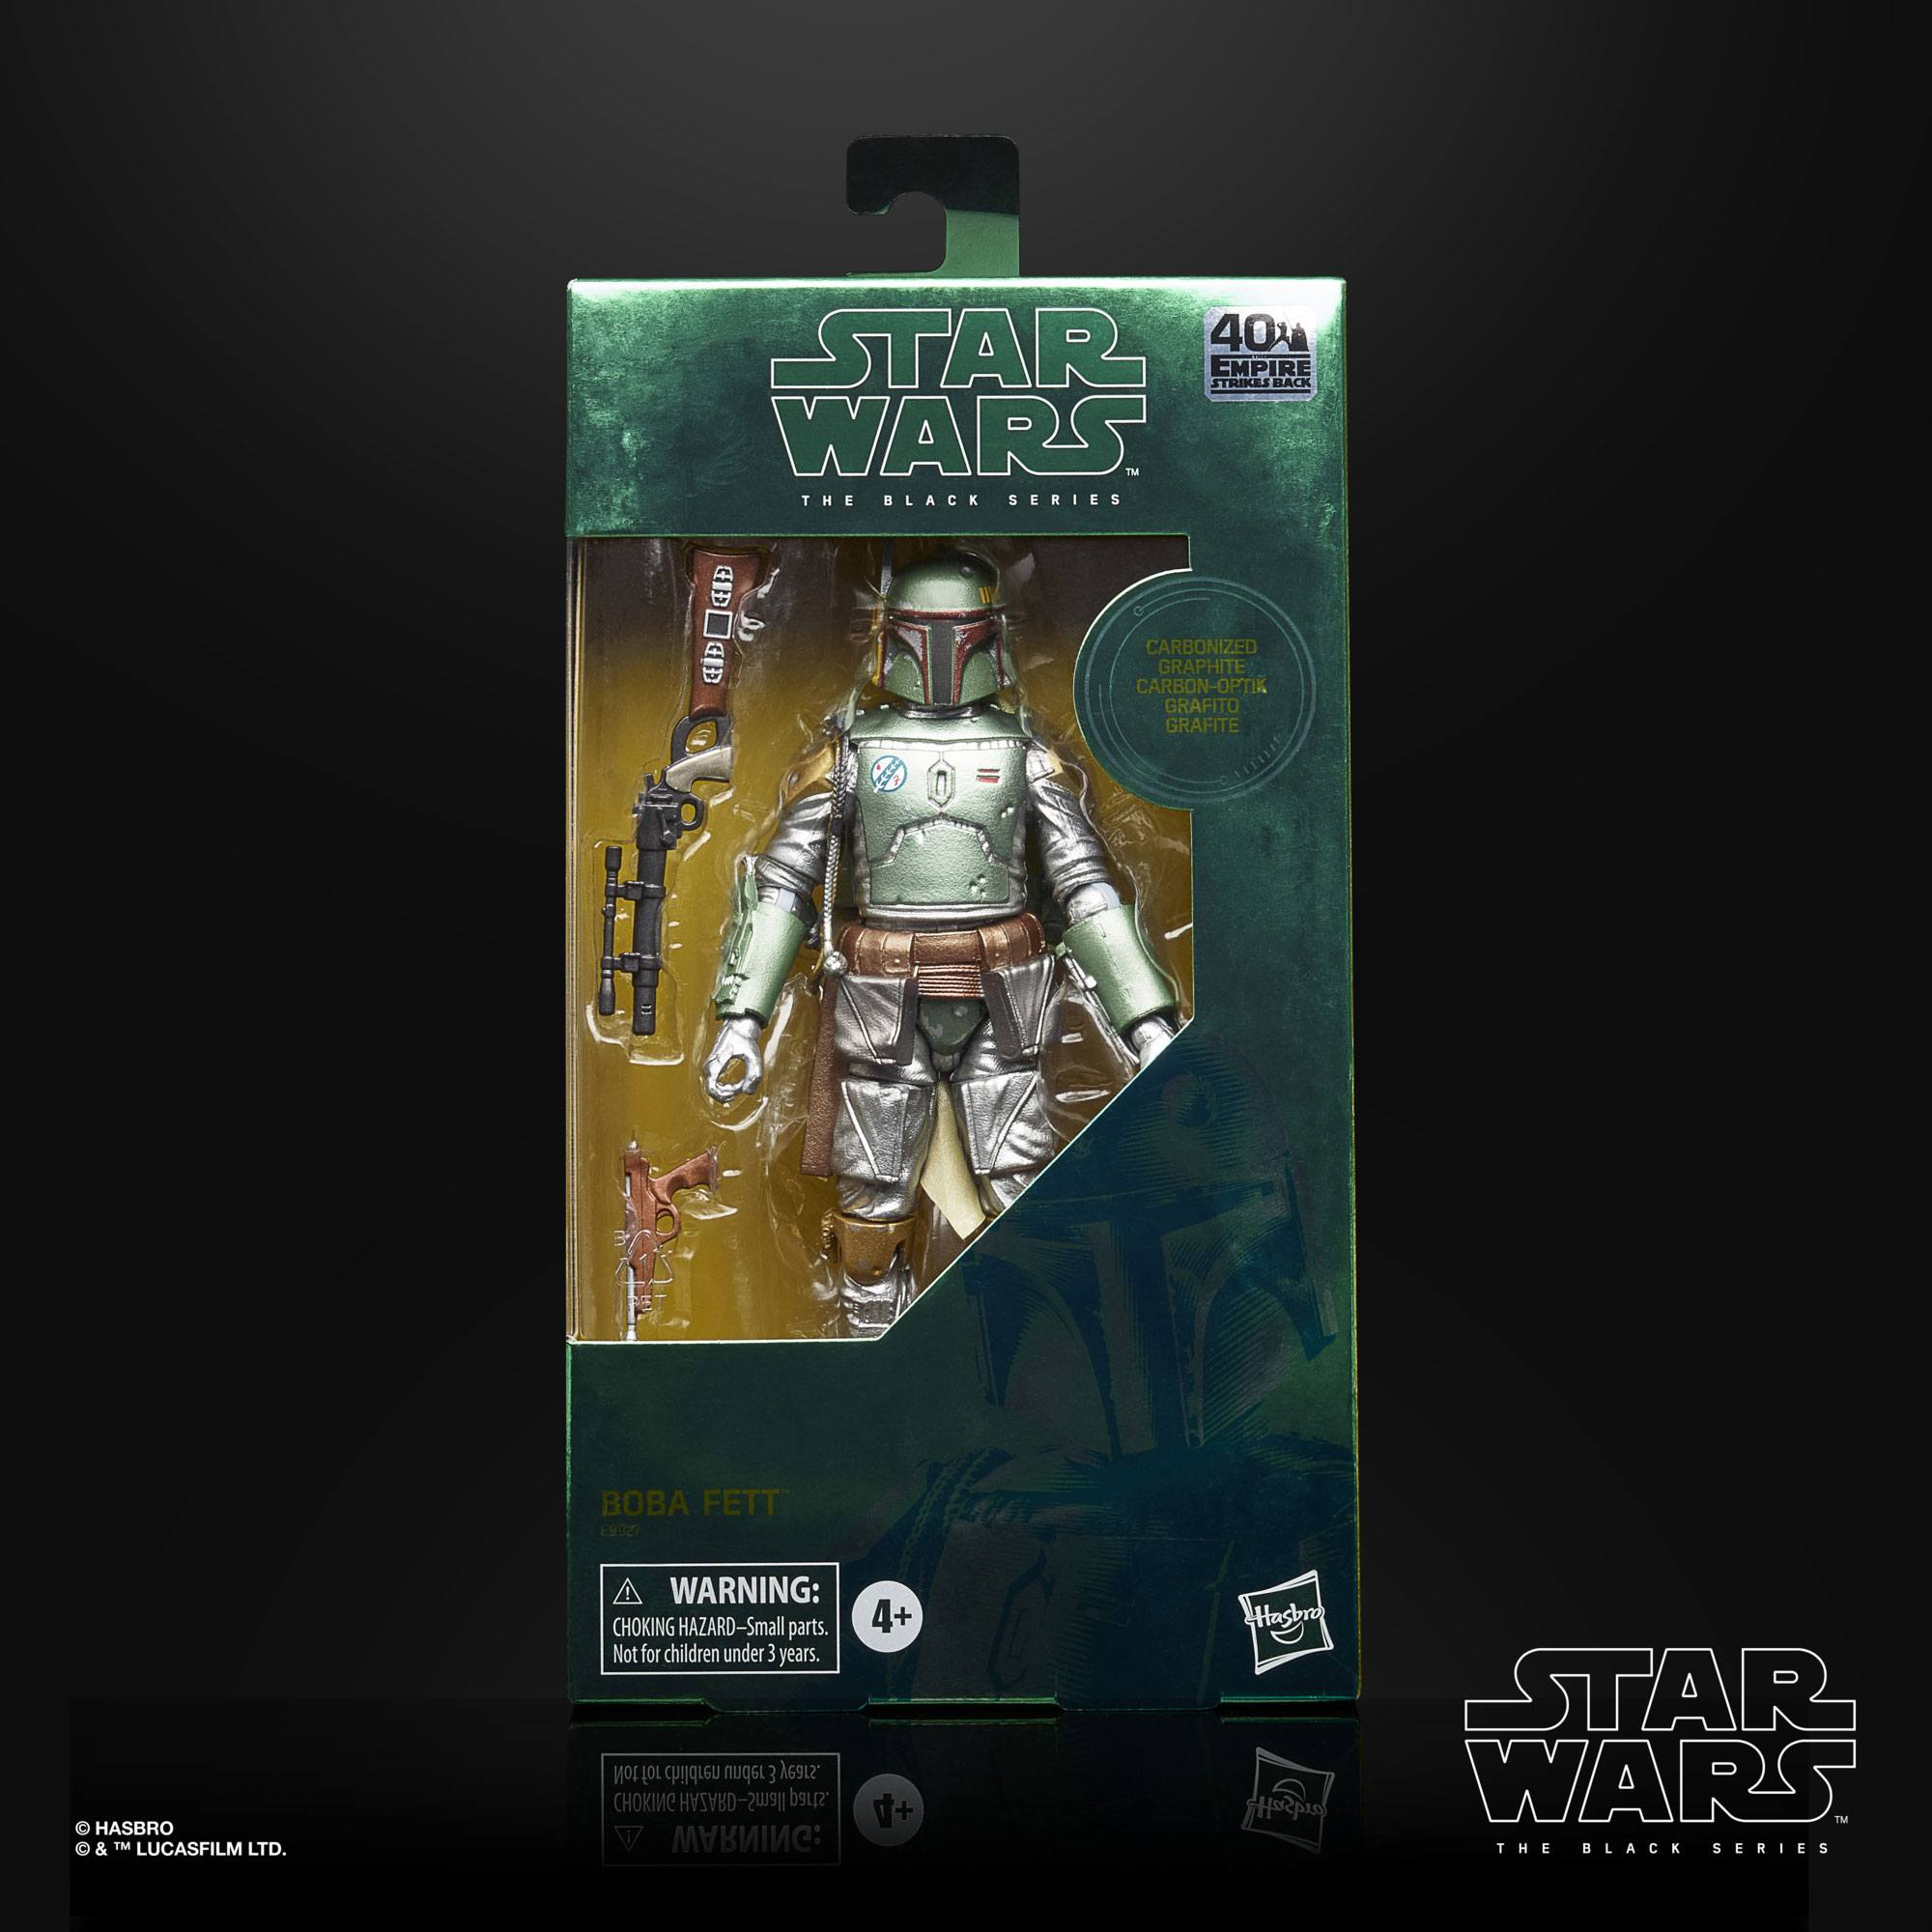 Star Wars Episode V Black Series Carbonized Actionfigur 2020 Boba Fett 15 cm E9927 5010993734450